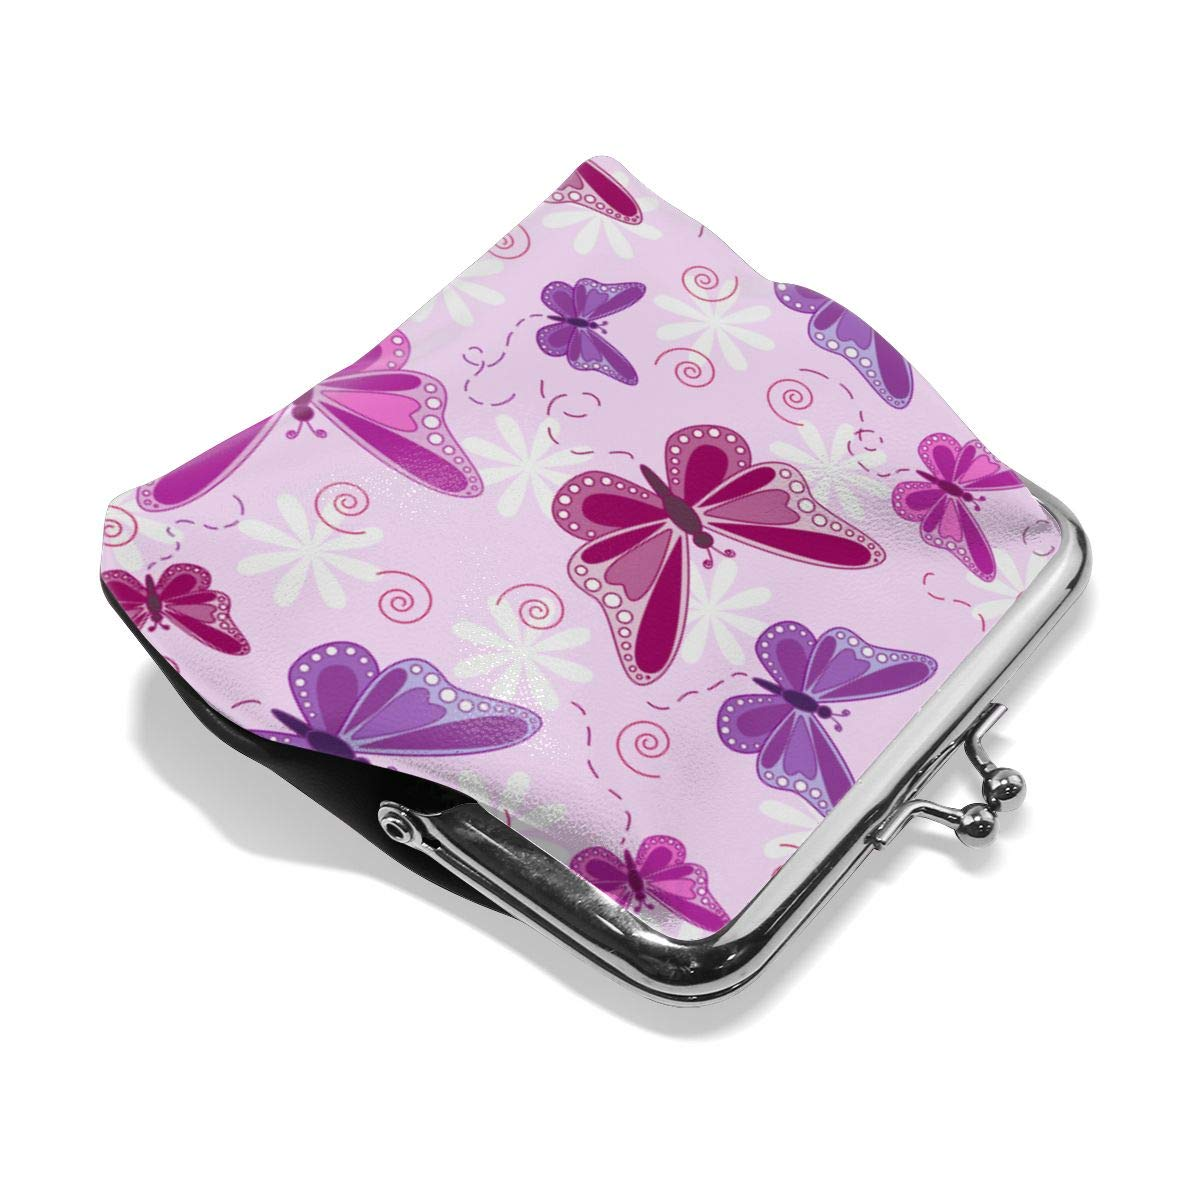 Flying Butterflies In Shades Of Pinks And Purple Coin Purses Vintage Pouch Kiss-lock Change Purse Wallets